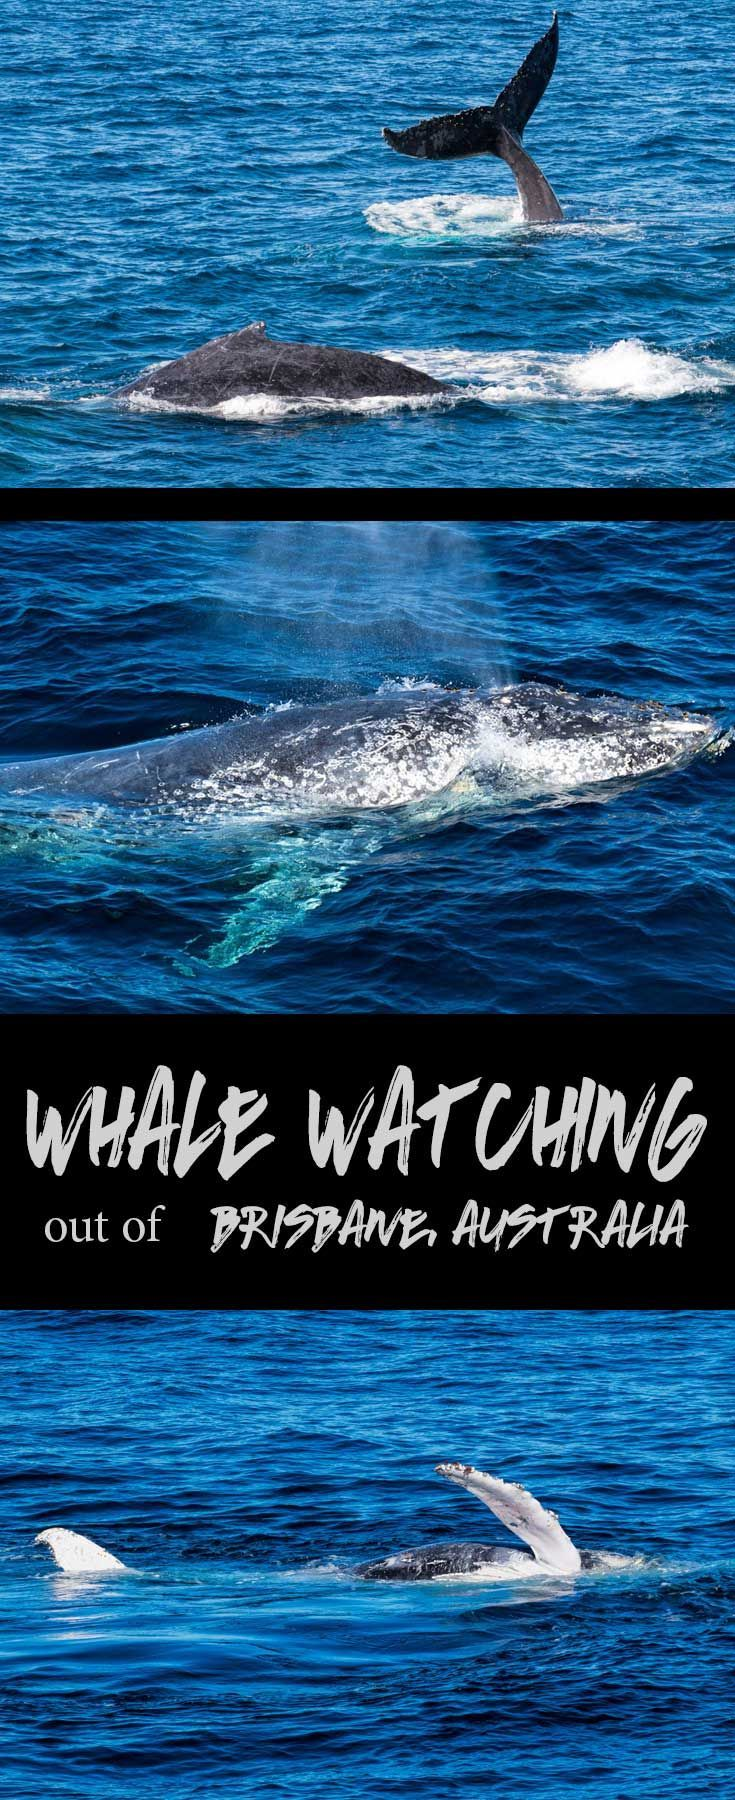 Looking for fun outdoor activities in Brisbane this winter? Consider a whale watching cruise on Morton Bay as the whales cruise past on their annual migration path.